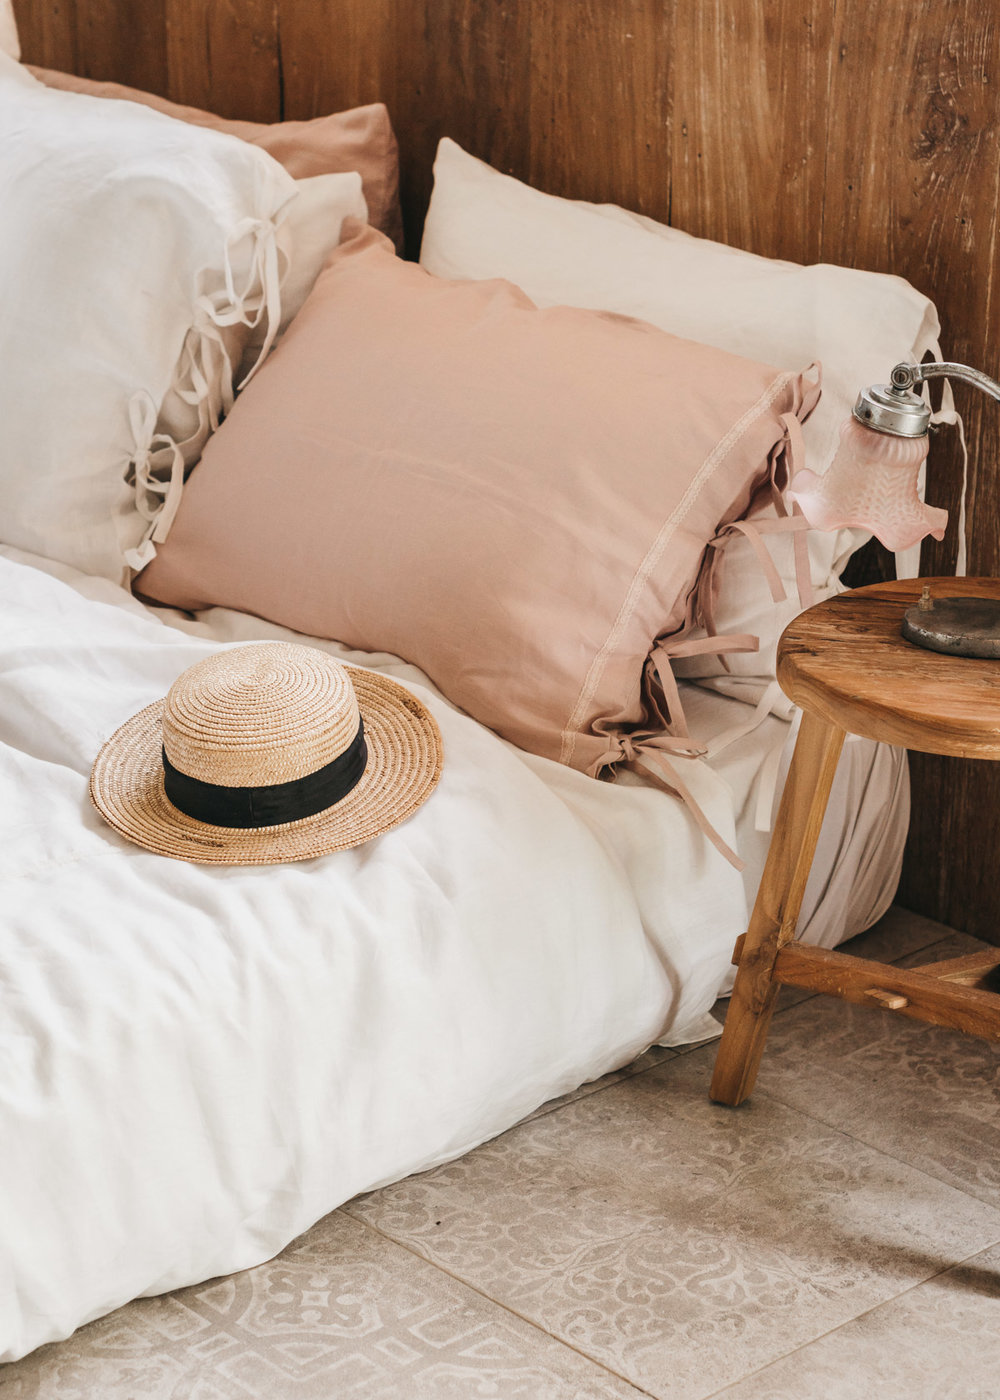 Keira-Mason-in-between-the-sheets-straw-hat-in-bed.jpg